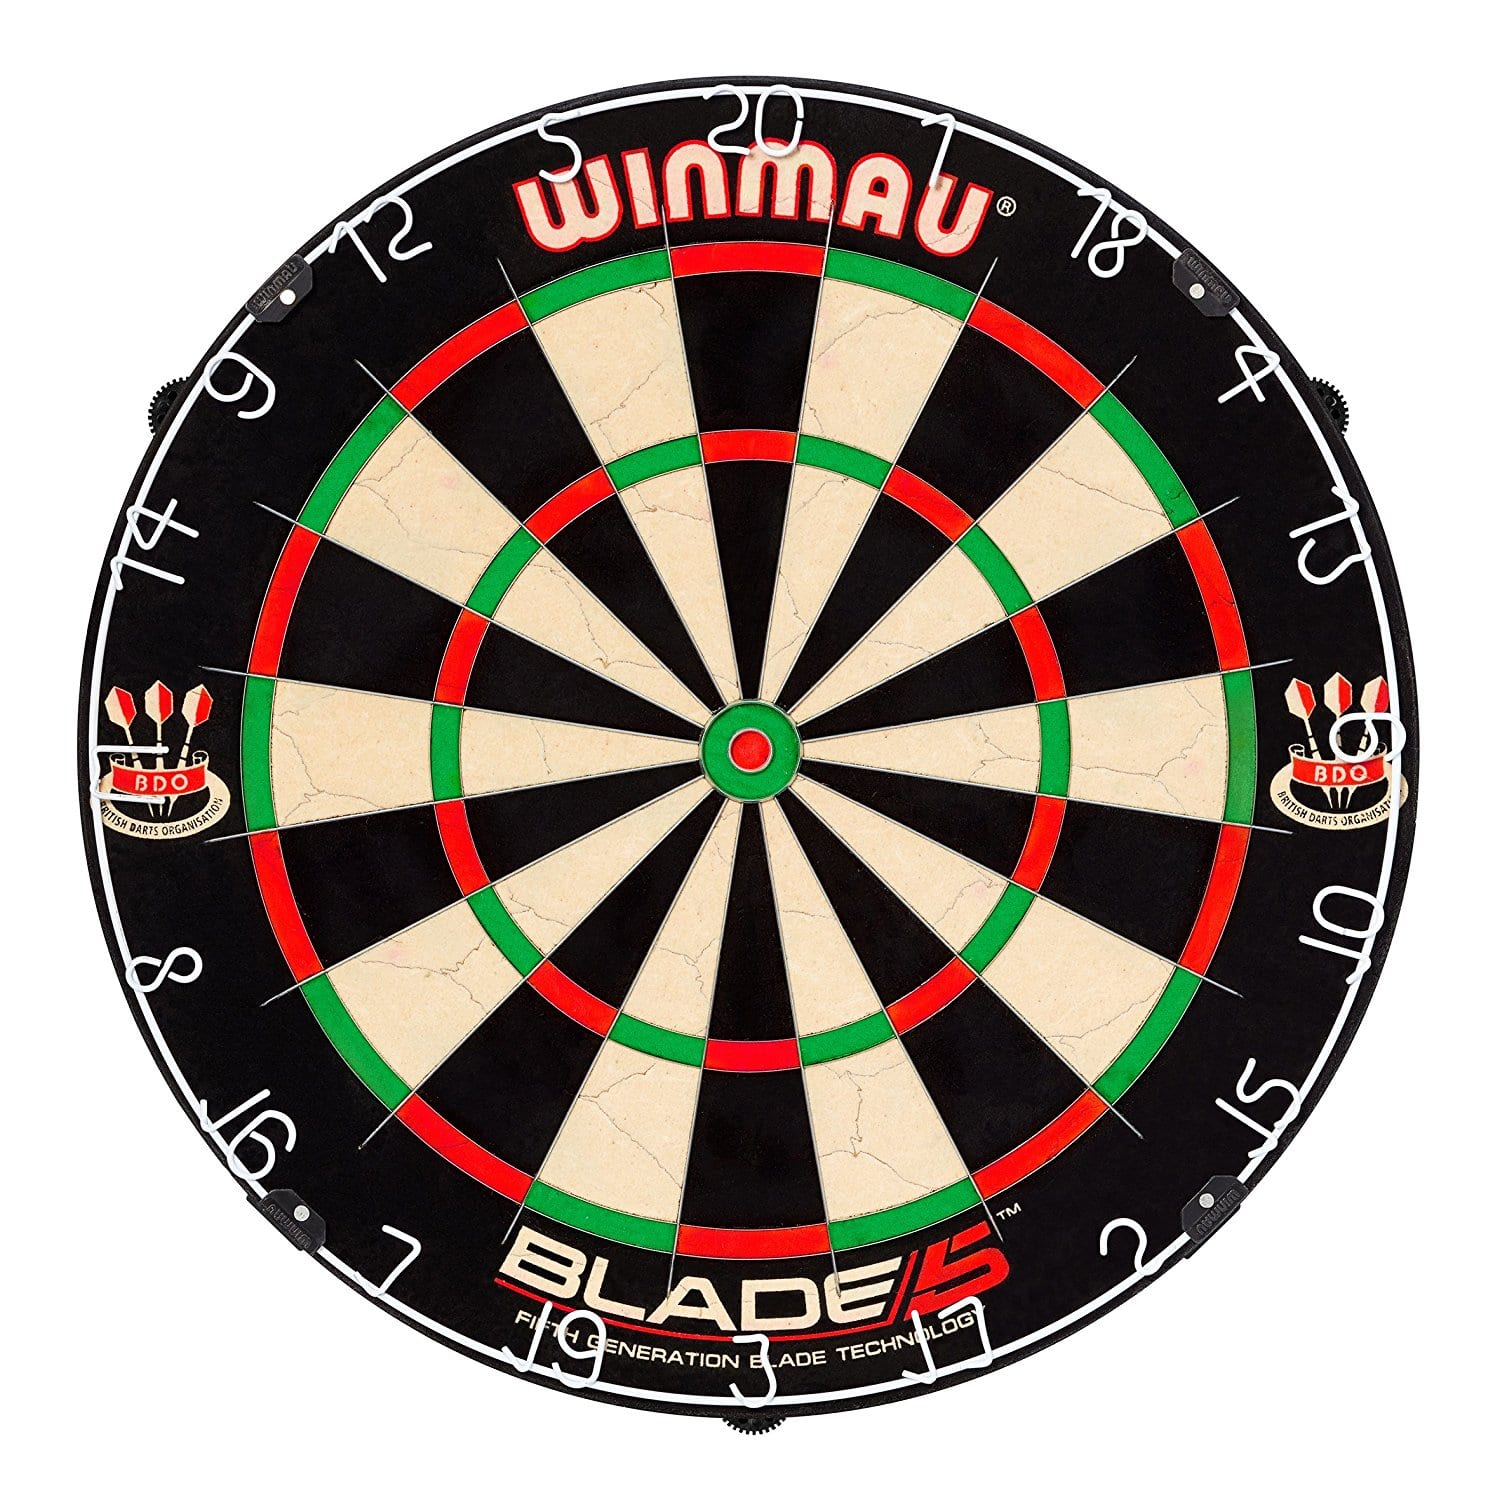 Winmau Blade 5 Bristle Dartboard - Amazon Deal of the Day - $45.49, Free Prime Shipping